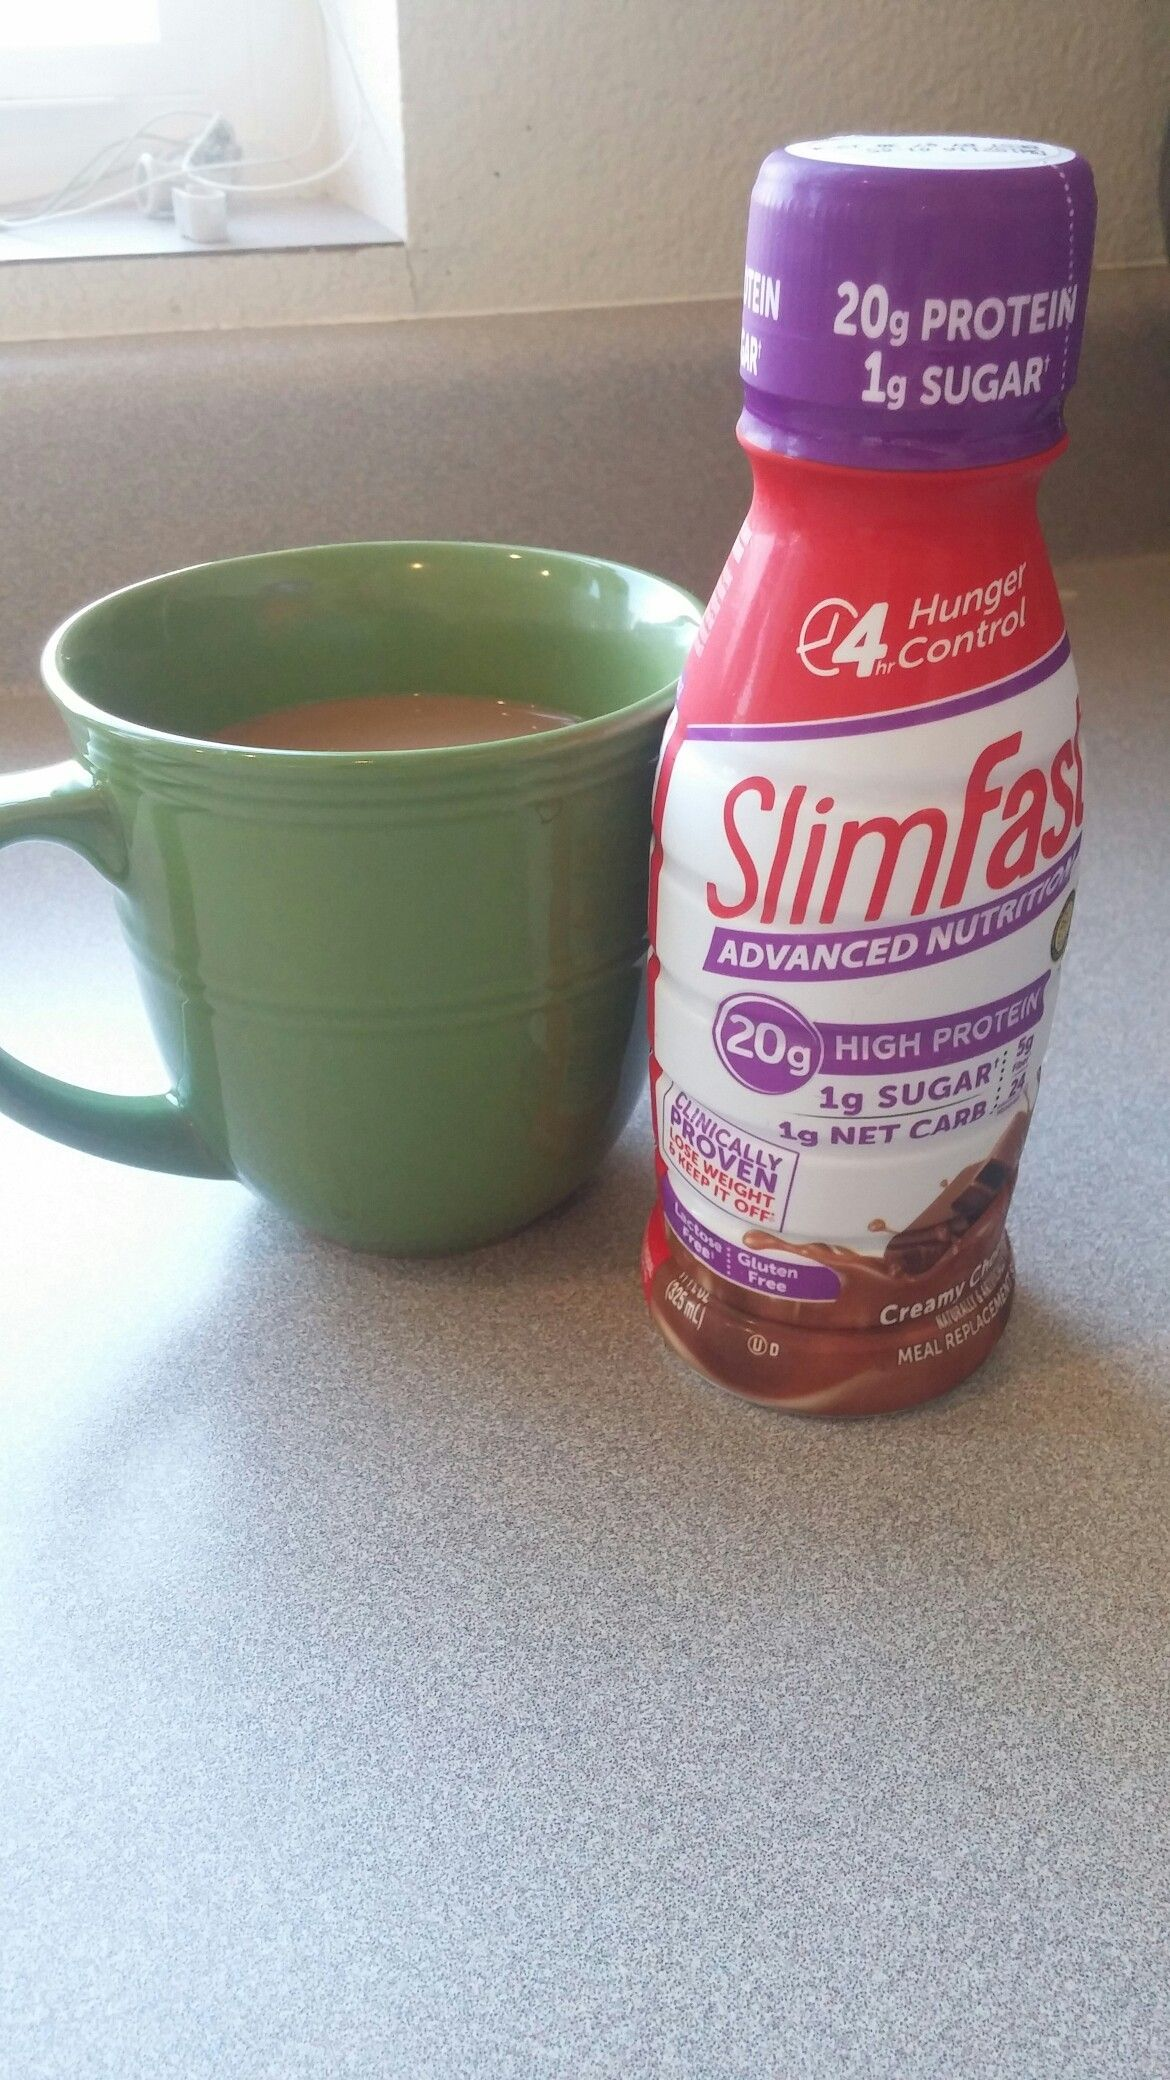 Doing a low carb or keto diet but love coffee with